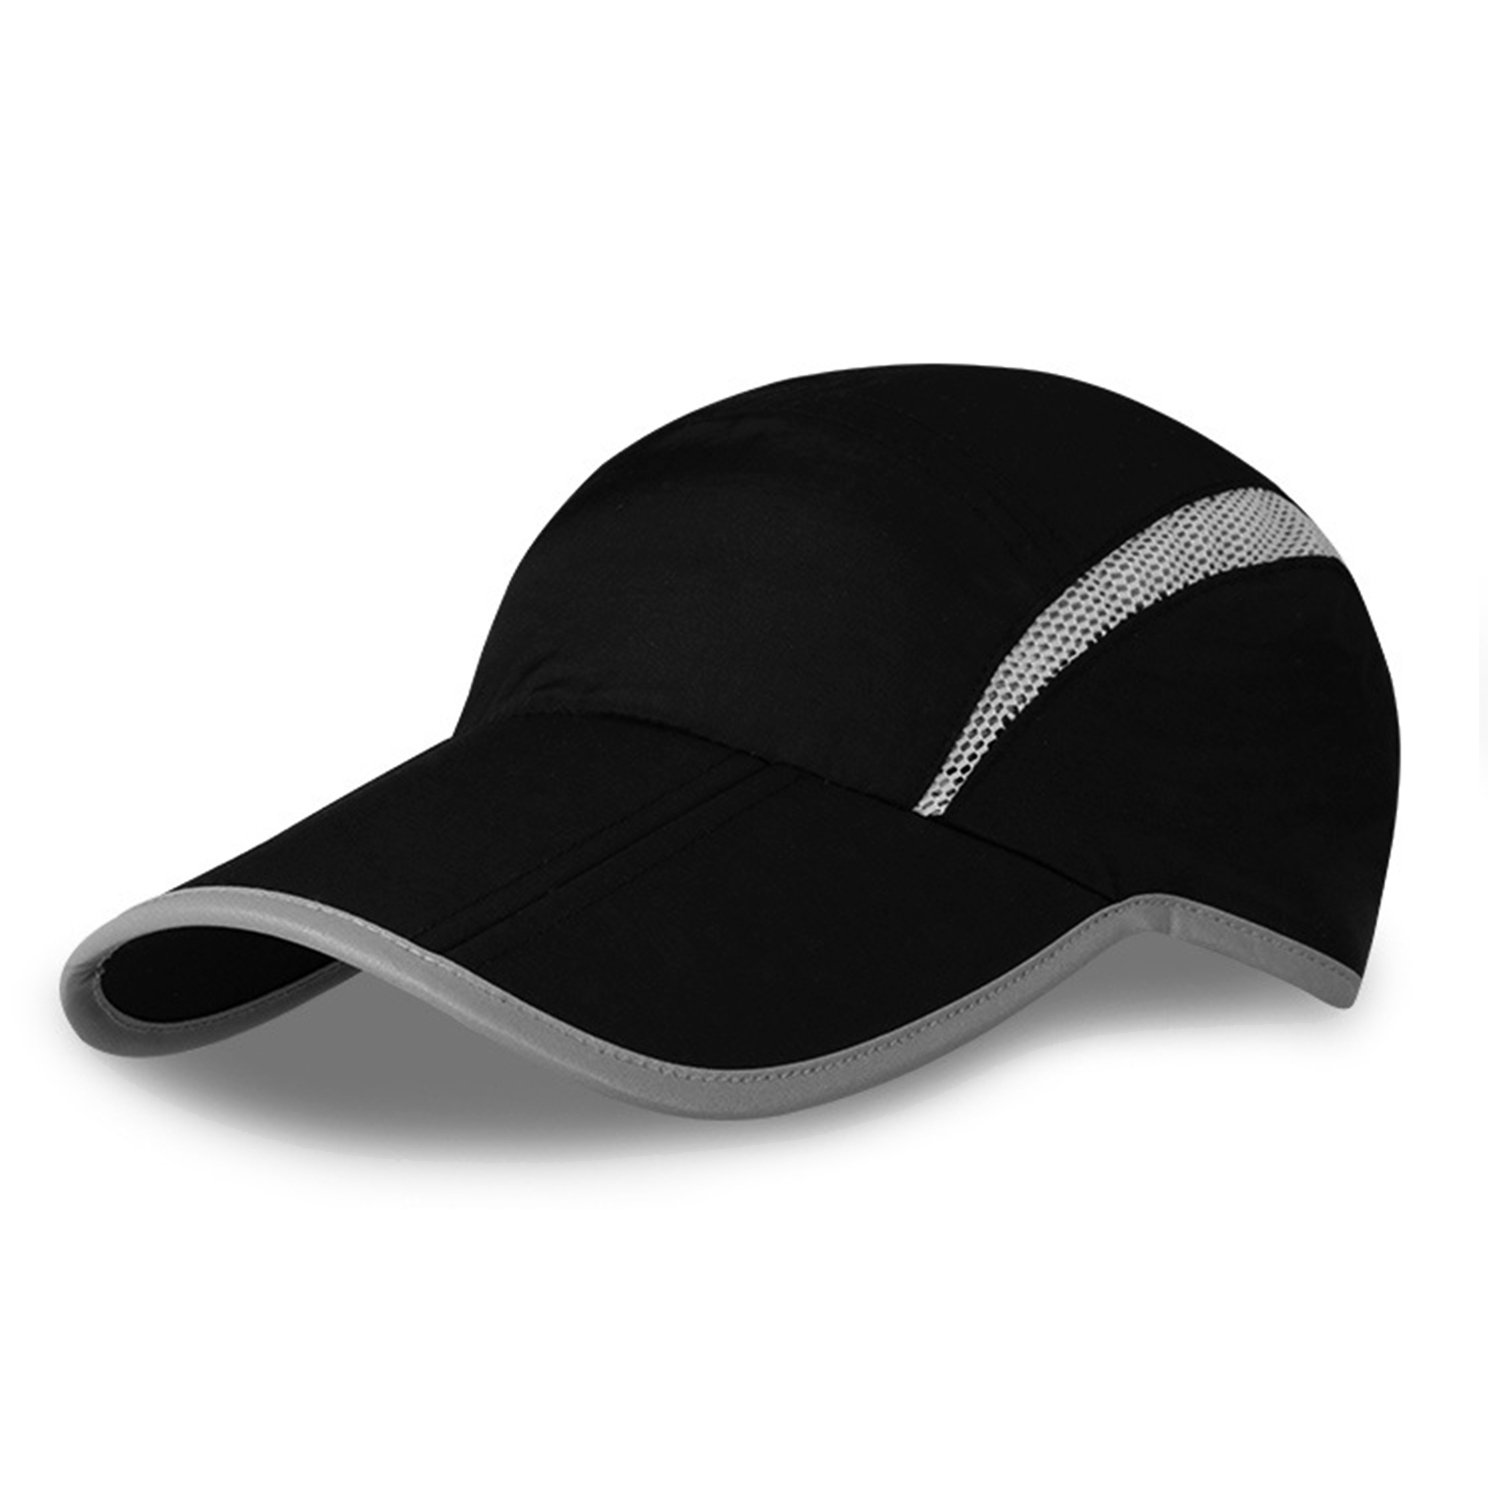 MerryJuly Baseball Cap Quick Dry Sun Hats UPF50+ Portable Travel Hats for Sports Golf Running Fishing Outdoor Research with Foldable Long Large Bill (Black)